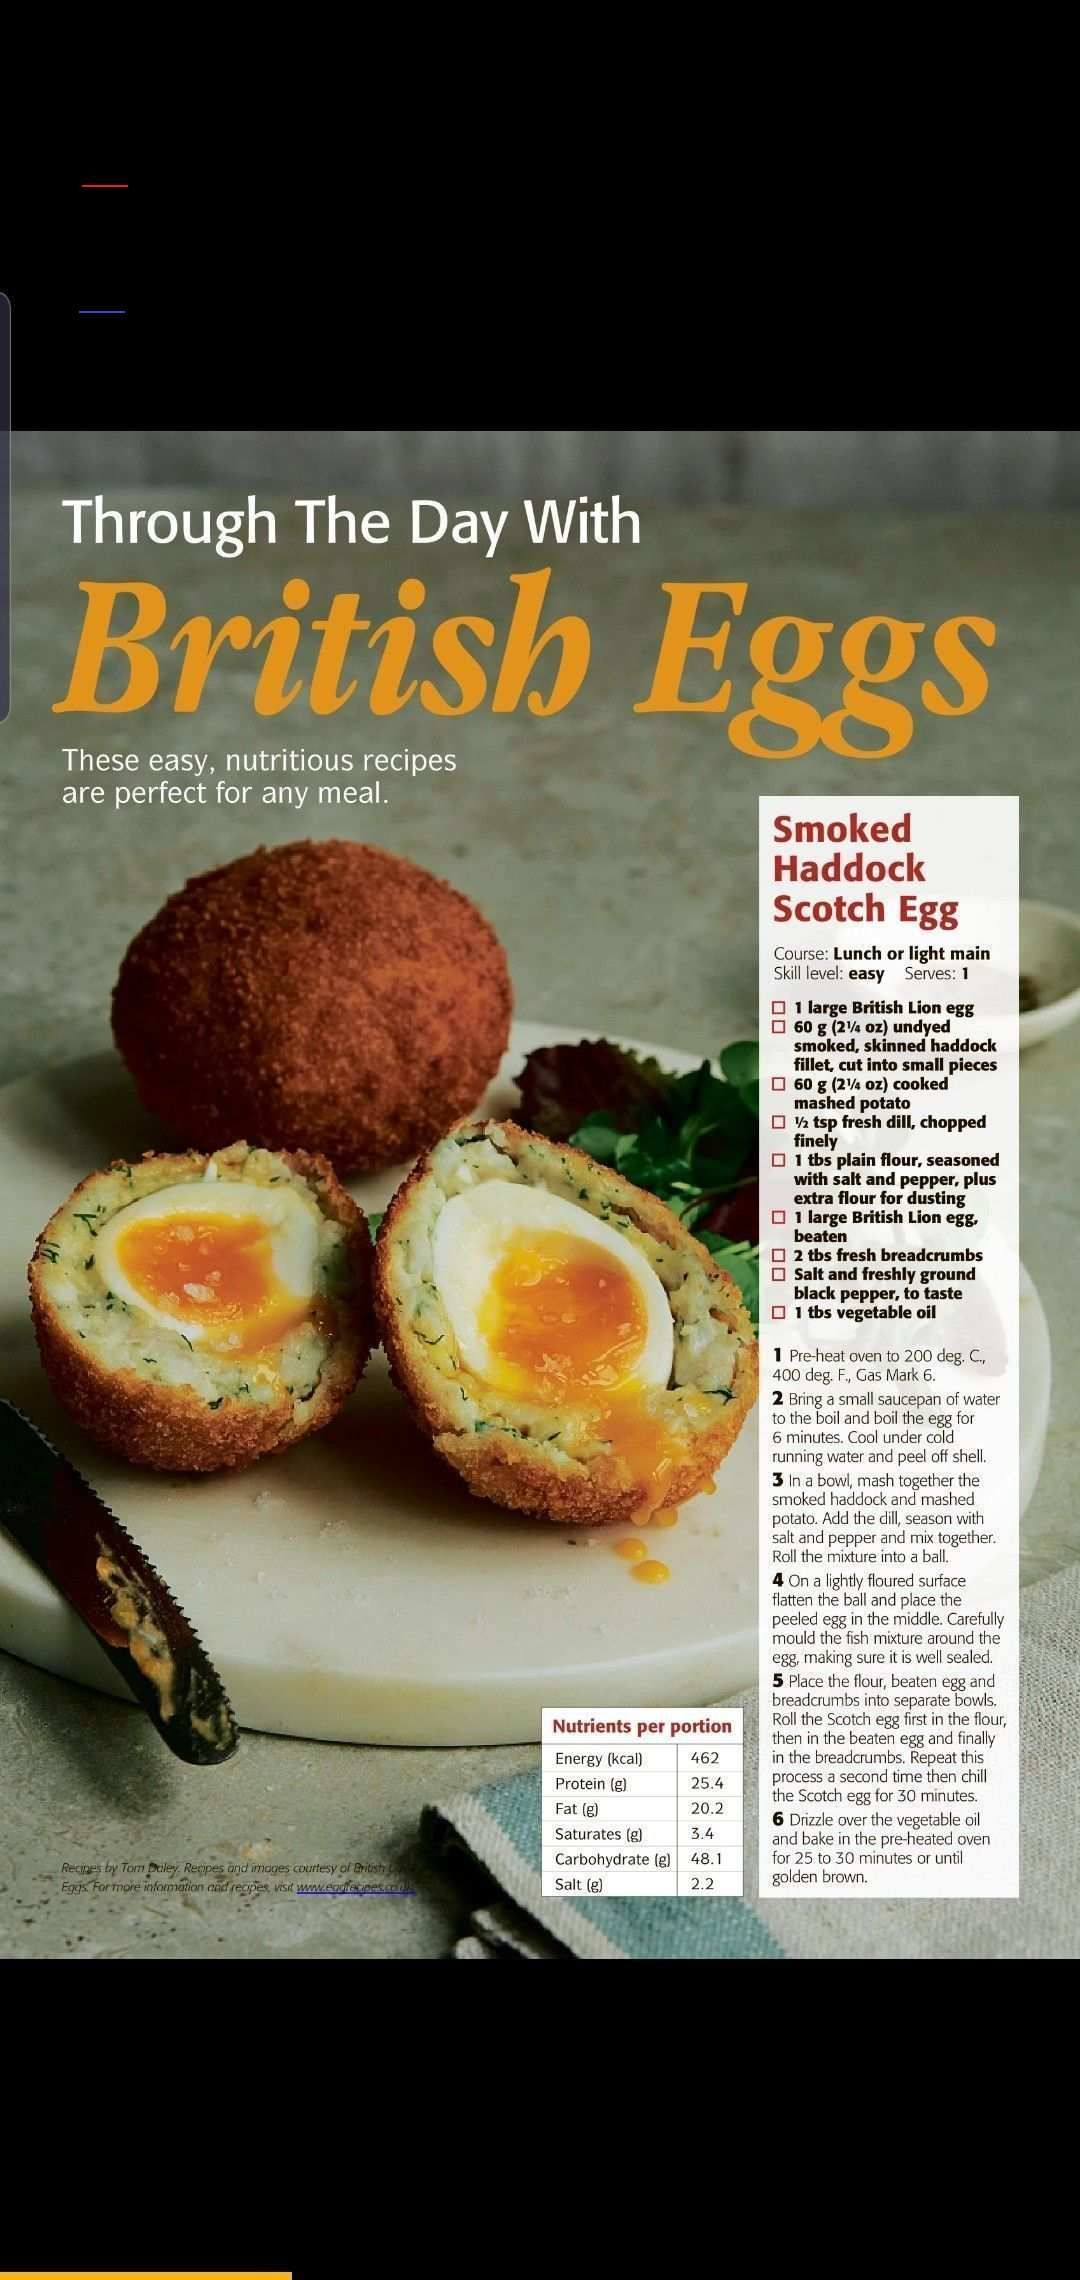 c4caaa3bf5aa1061156832bd478c68d8 - Scotch Eggs Better Homes And Gardens